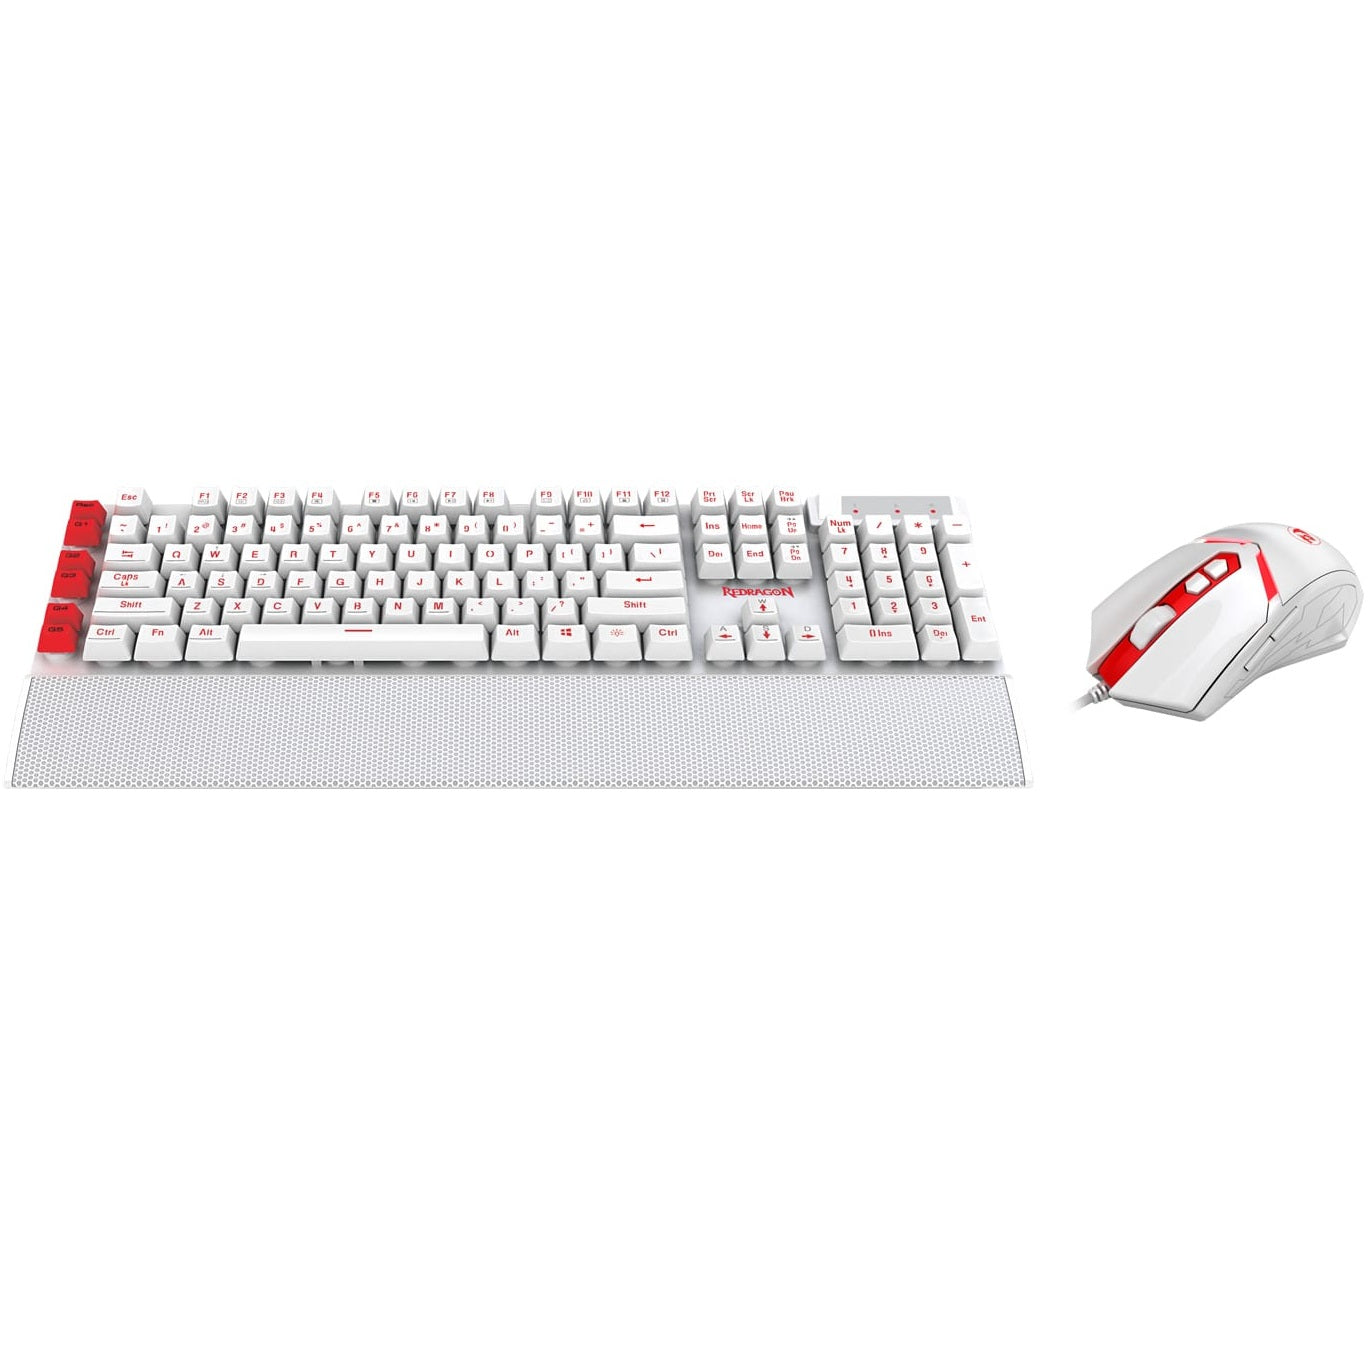 Redragon YAKSA Gaming Keyboard NEMEANLION Wired Gaming Mouse Combo S102-W